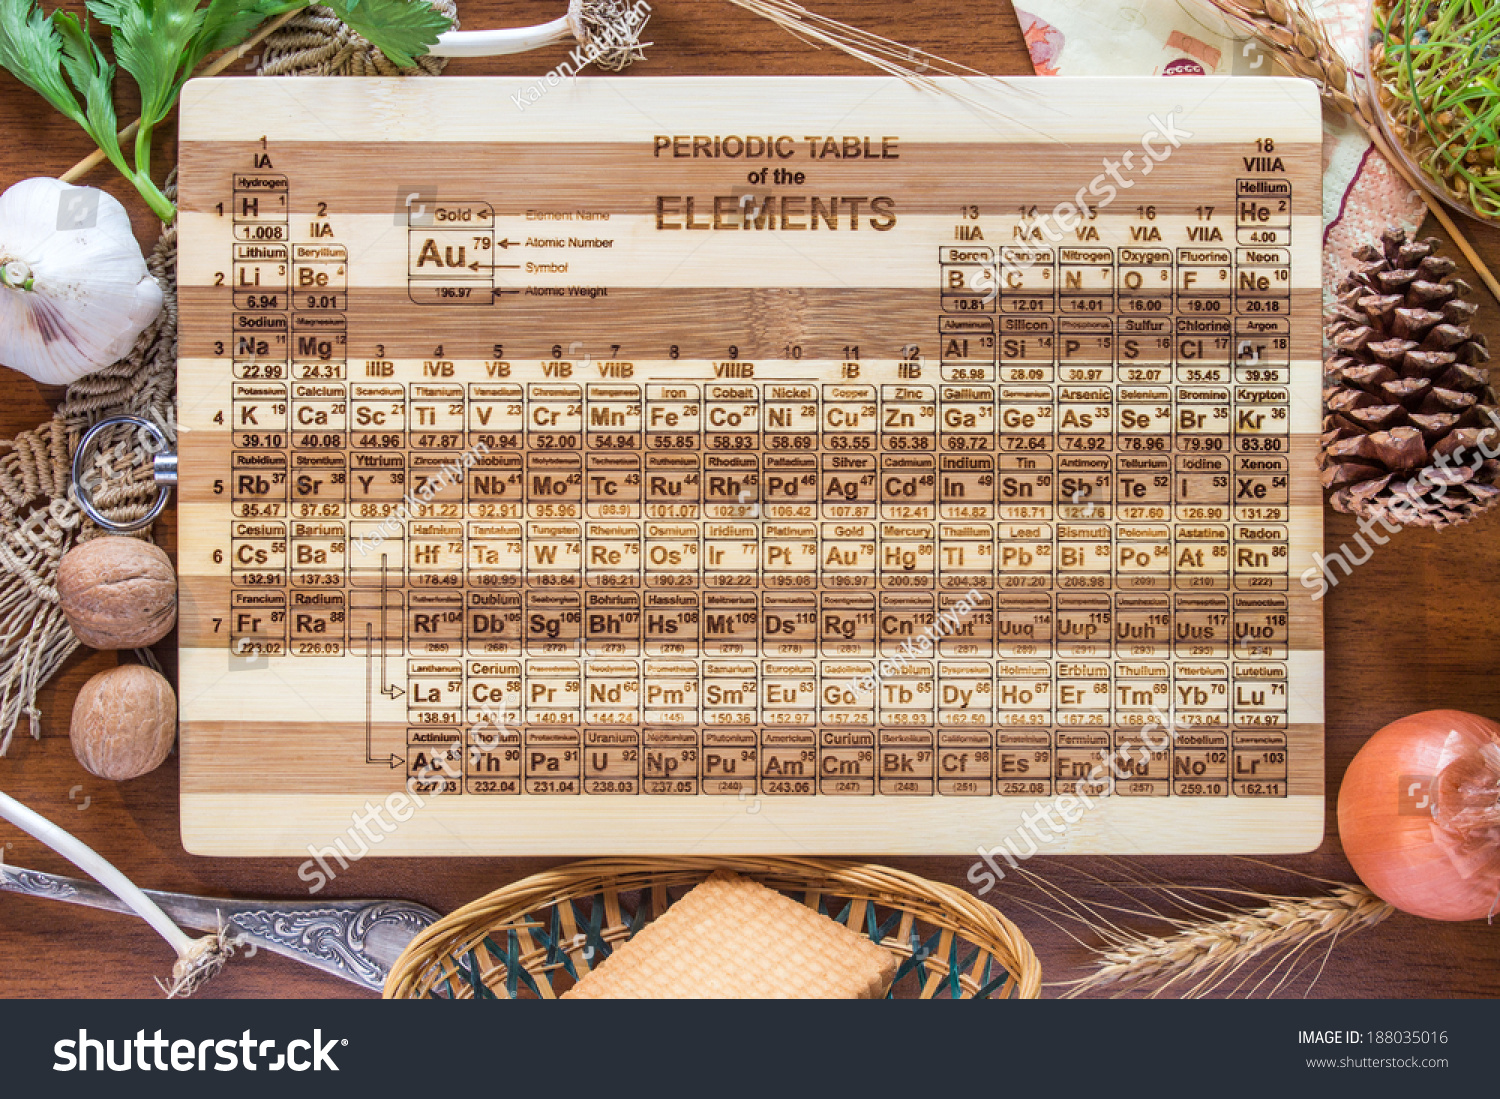 Periodic table of wood image collections periodic table images periodic table engraved bamboo wood cutting stock photo 188035016 periodic table engraved bamboo wood cutting board gamestrikefo Gallery